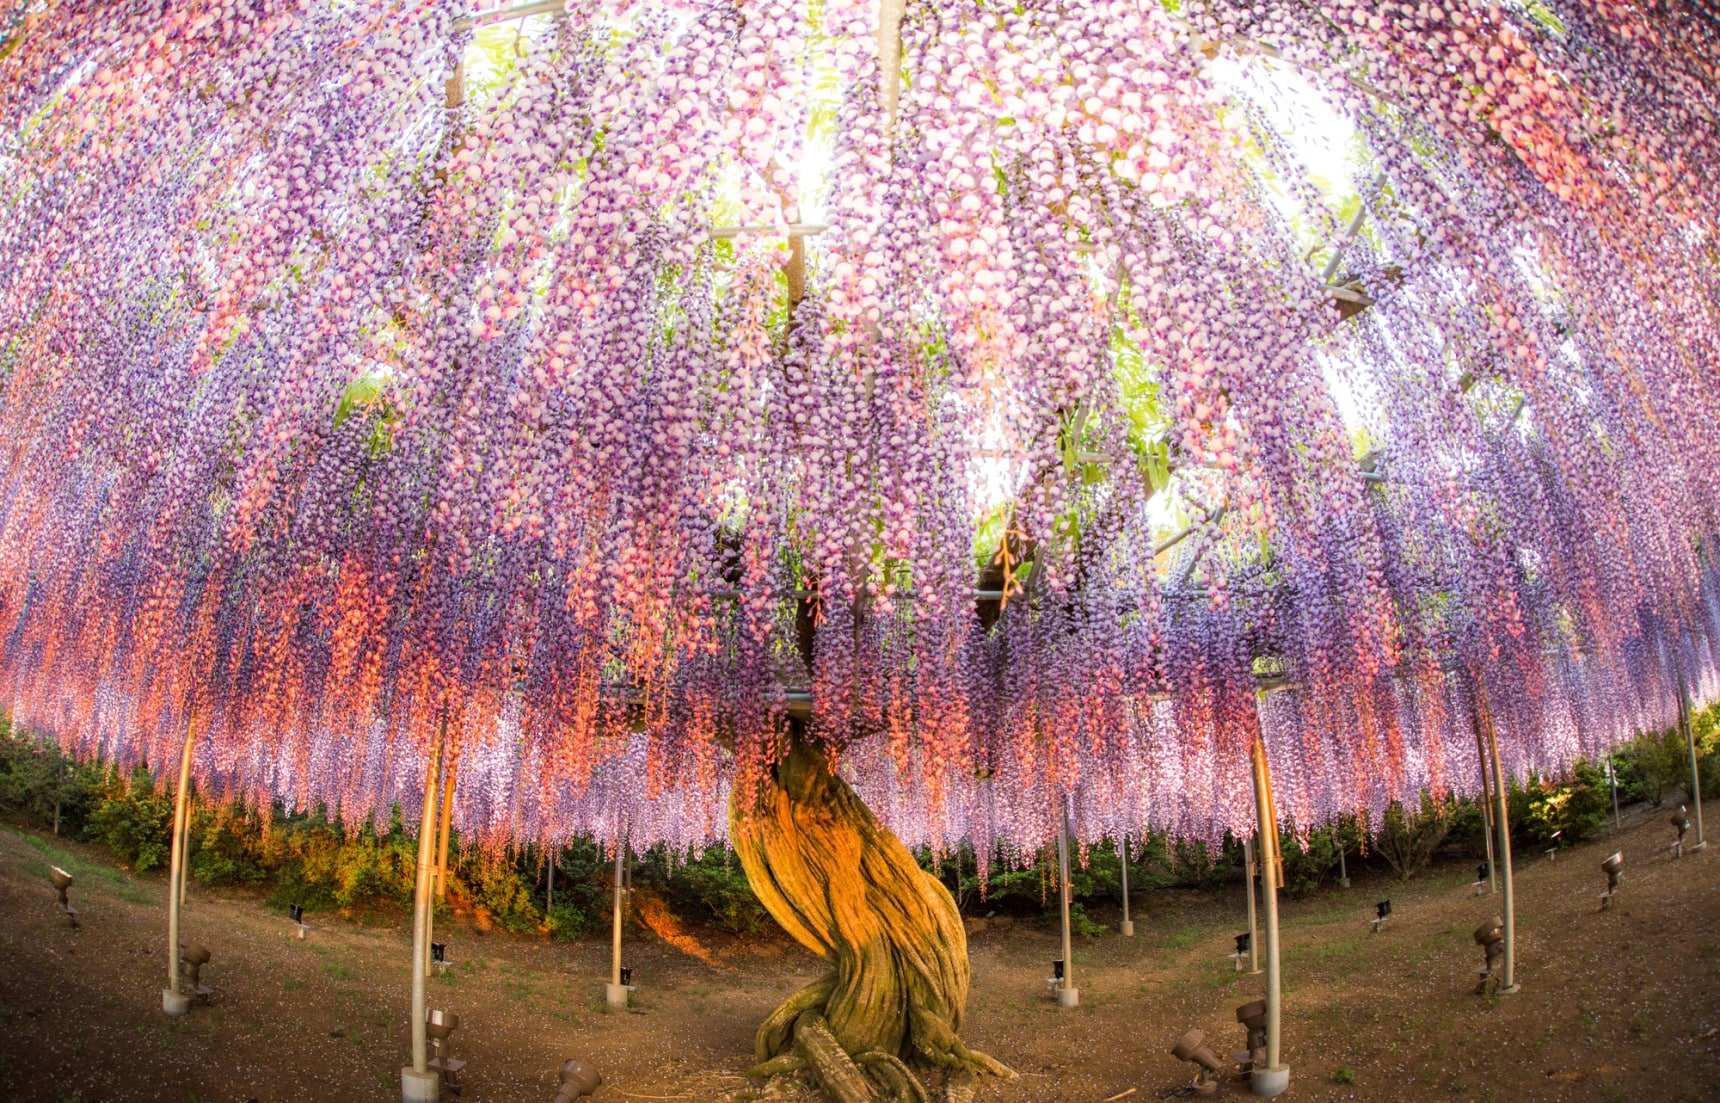 Whisk Yourself Away to a Land of Wisteria